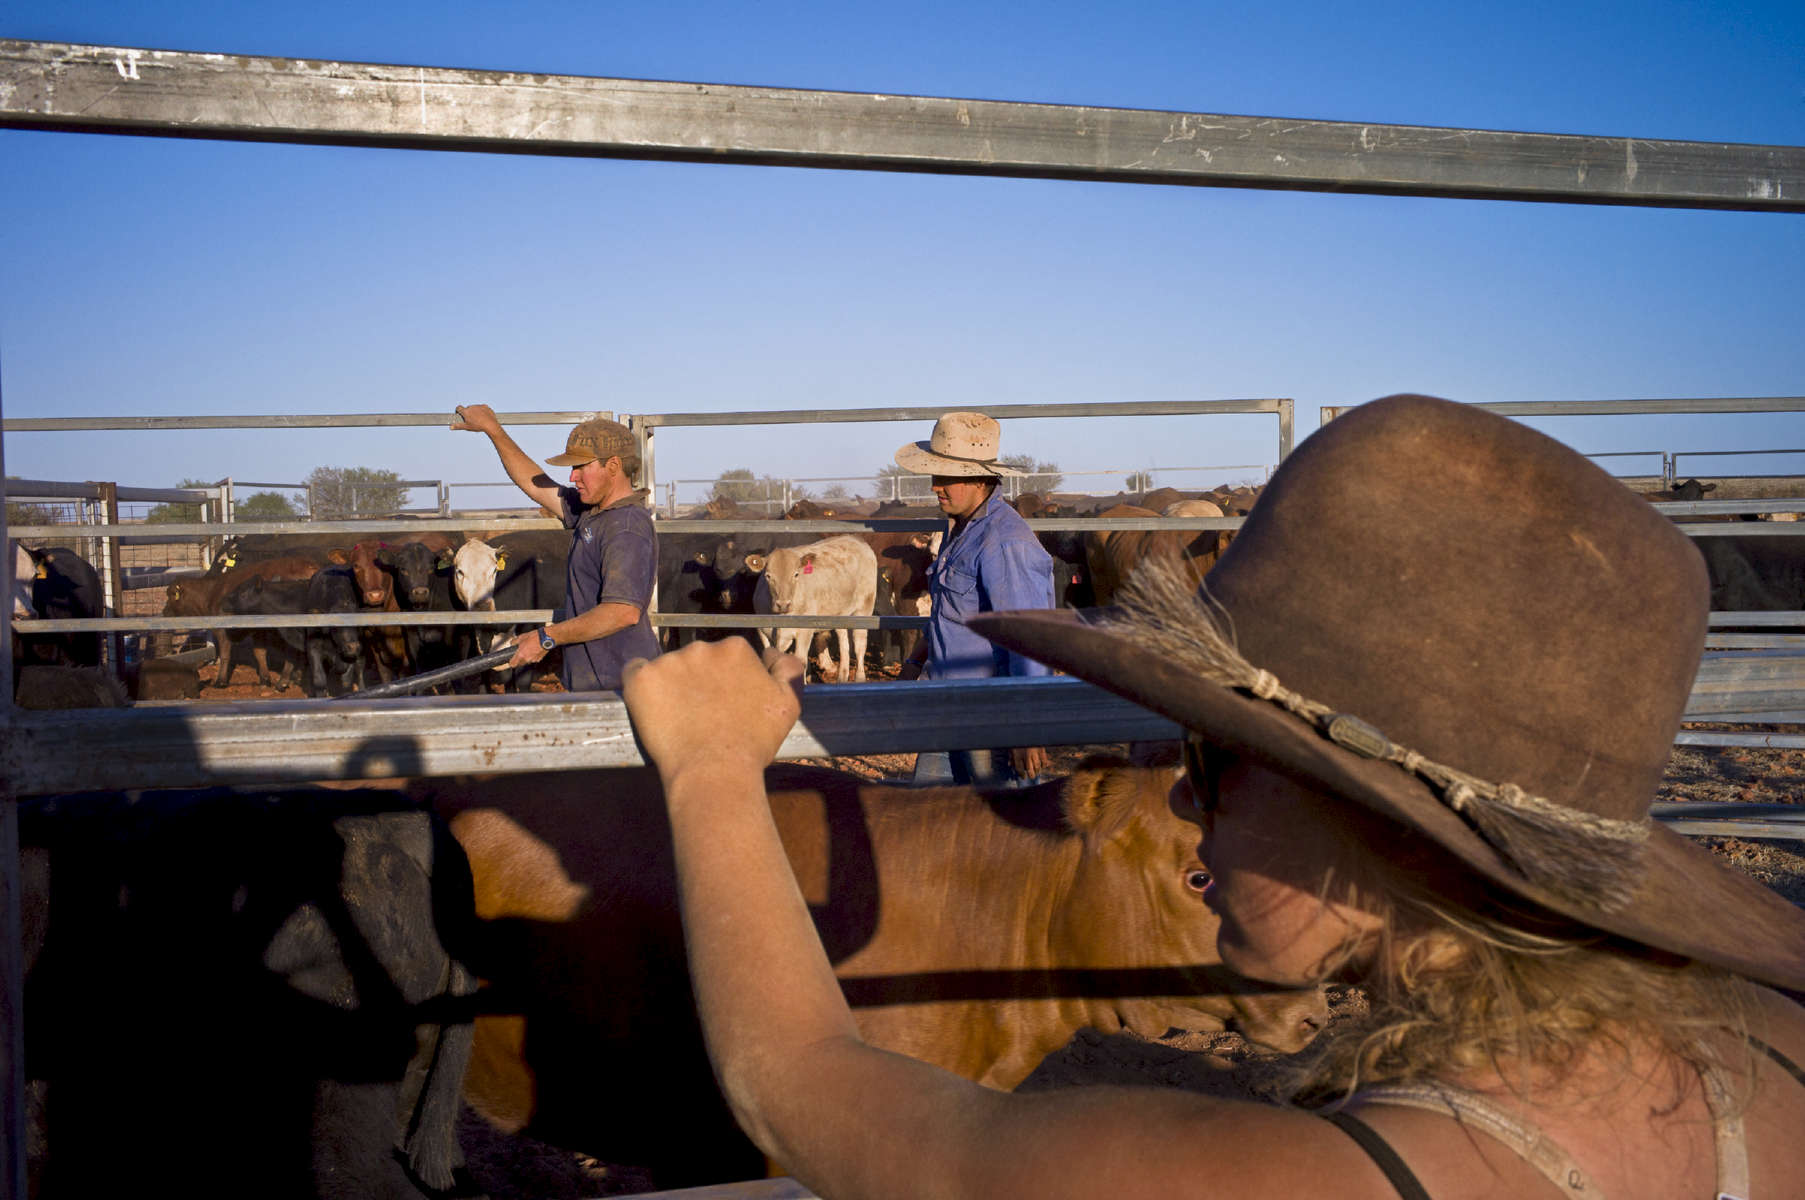 Once the animals are penned, it takes 4 to 5 days to let them through, one by one, to tattoo and vaccinate them and trim their horns before they are loaded for the abattoir or redirected towards another pasture. Cattle spend 4 to 5 years in pasture before they are sent to the abattoir. 2011, Northern Territory, Australia.